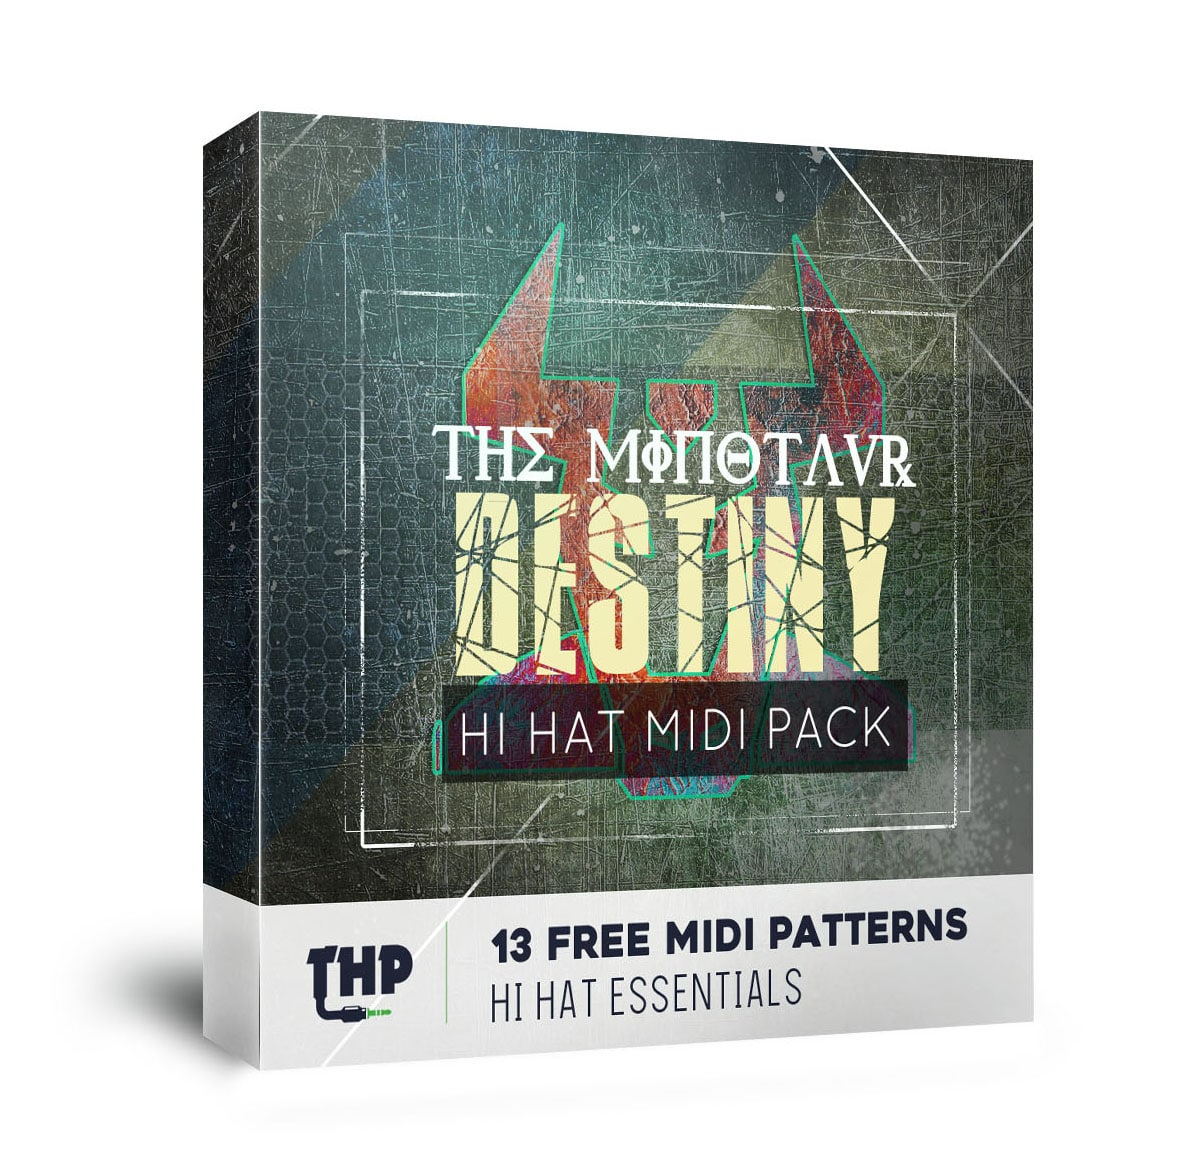 The Minautor Destiny Free Hi Hat midi